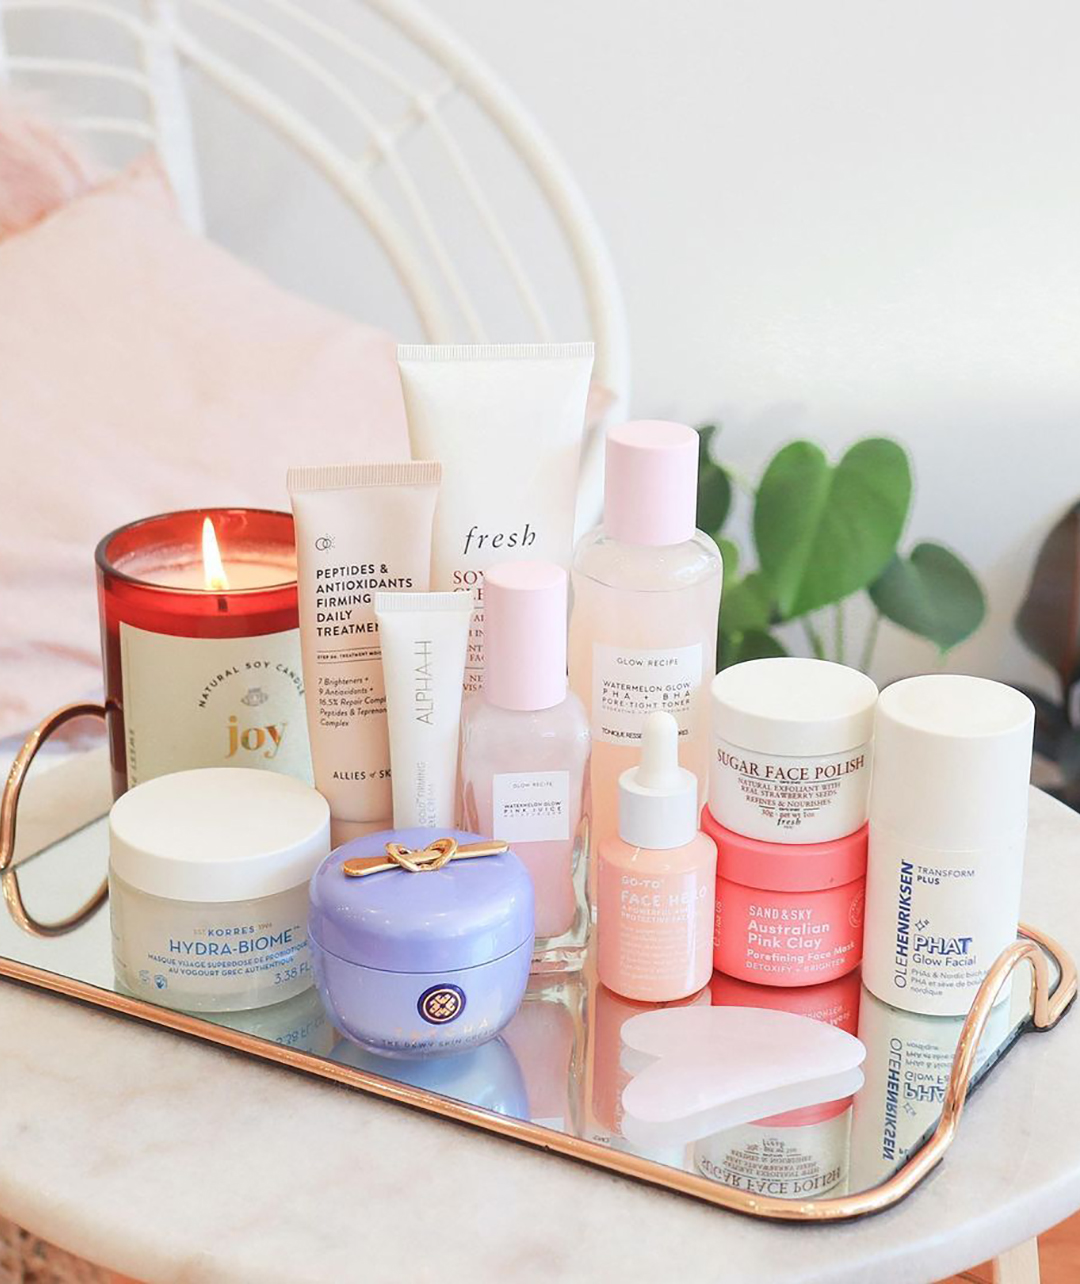 A photograph by one of Glow Candy's customers, shared to social media. The photo shows the 'Joy' candle positioned at the back of a tray of beauty prodcuts.